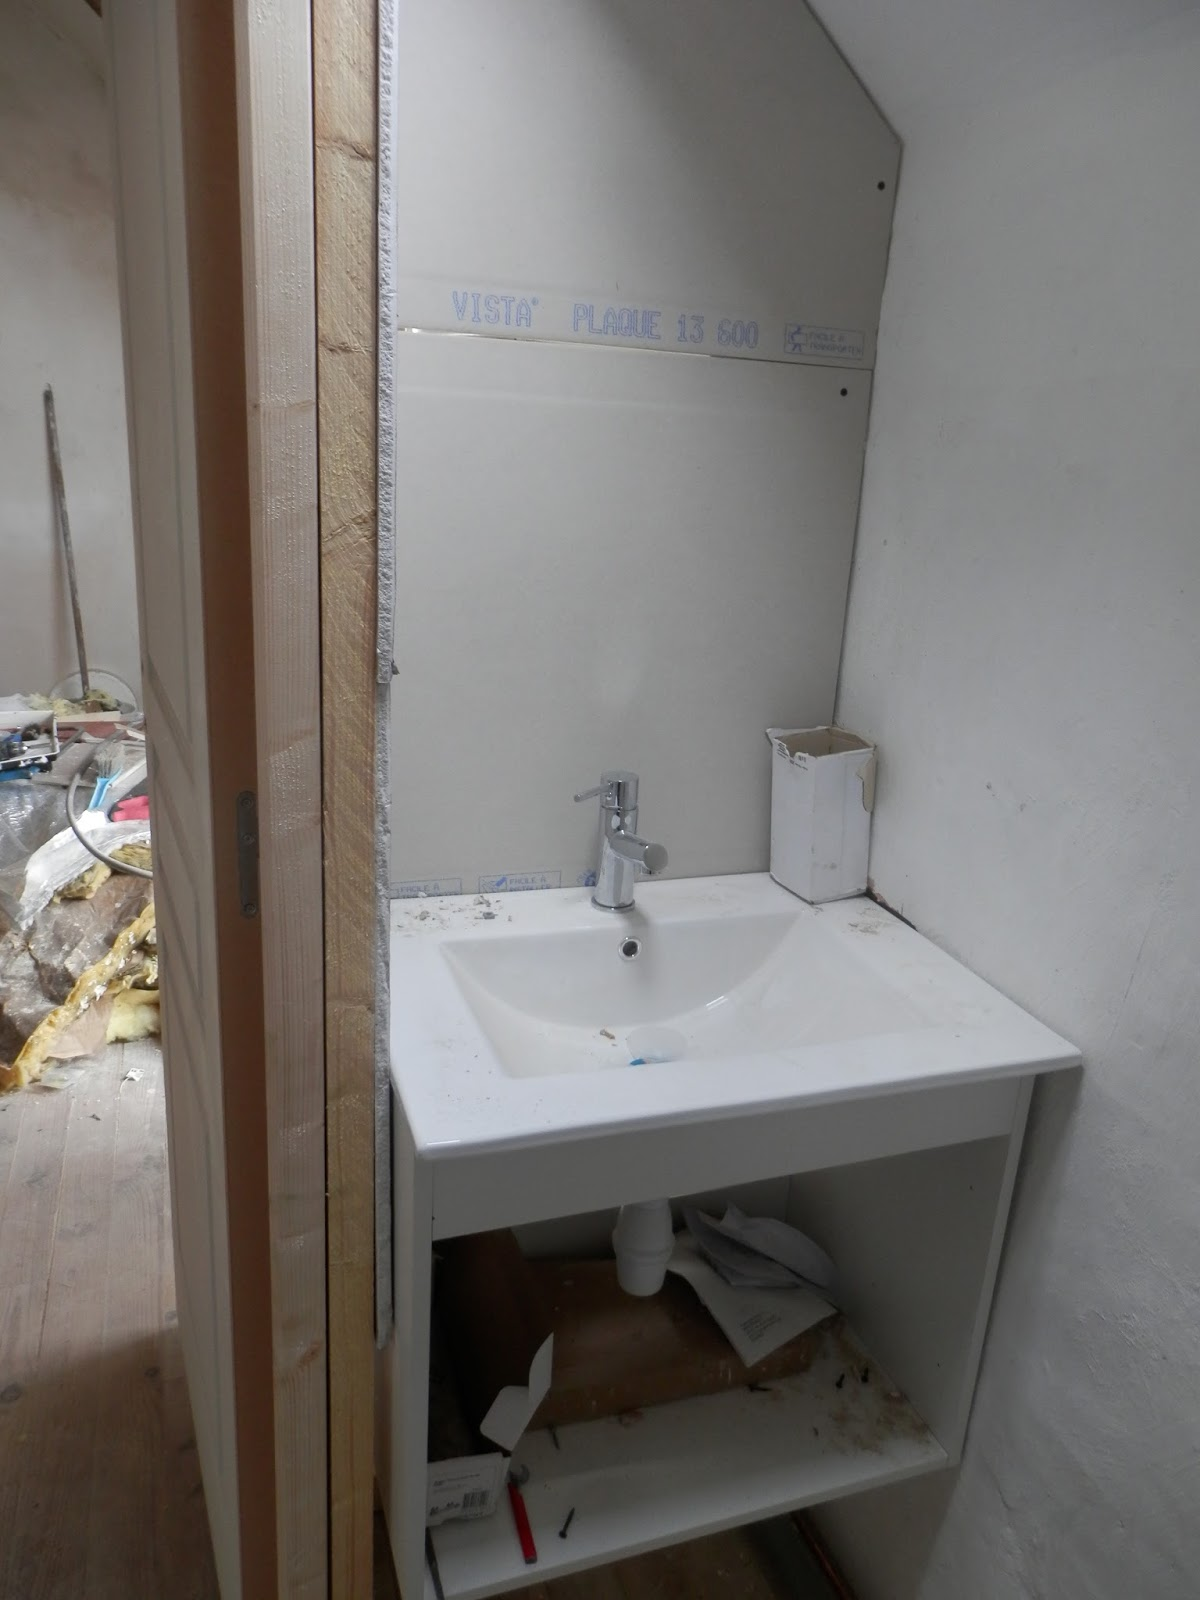 Renovation of a derelict house in brittany france for Bathroom renovation project